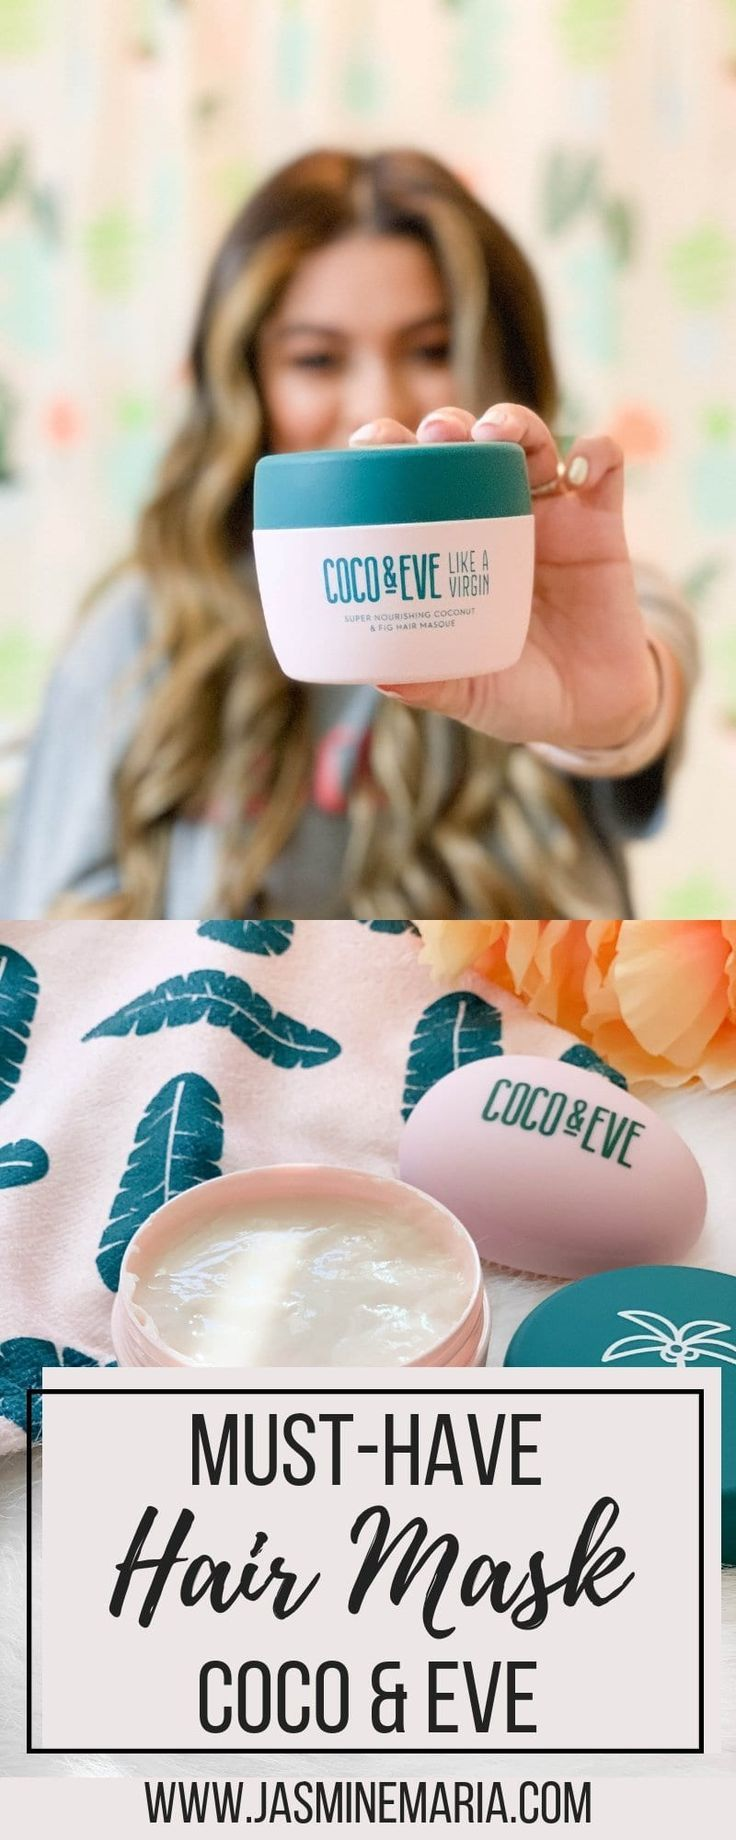 Coco & Eve a Must-Have Hair Mask #ad #cocoandeve #hairmasks #haircare #haircaretips #hairextensionscare #hairroutine #haircareroutine